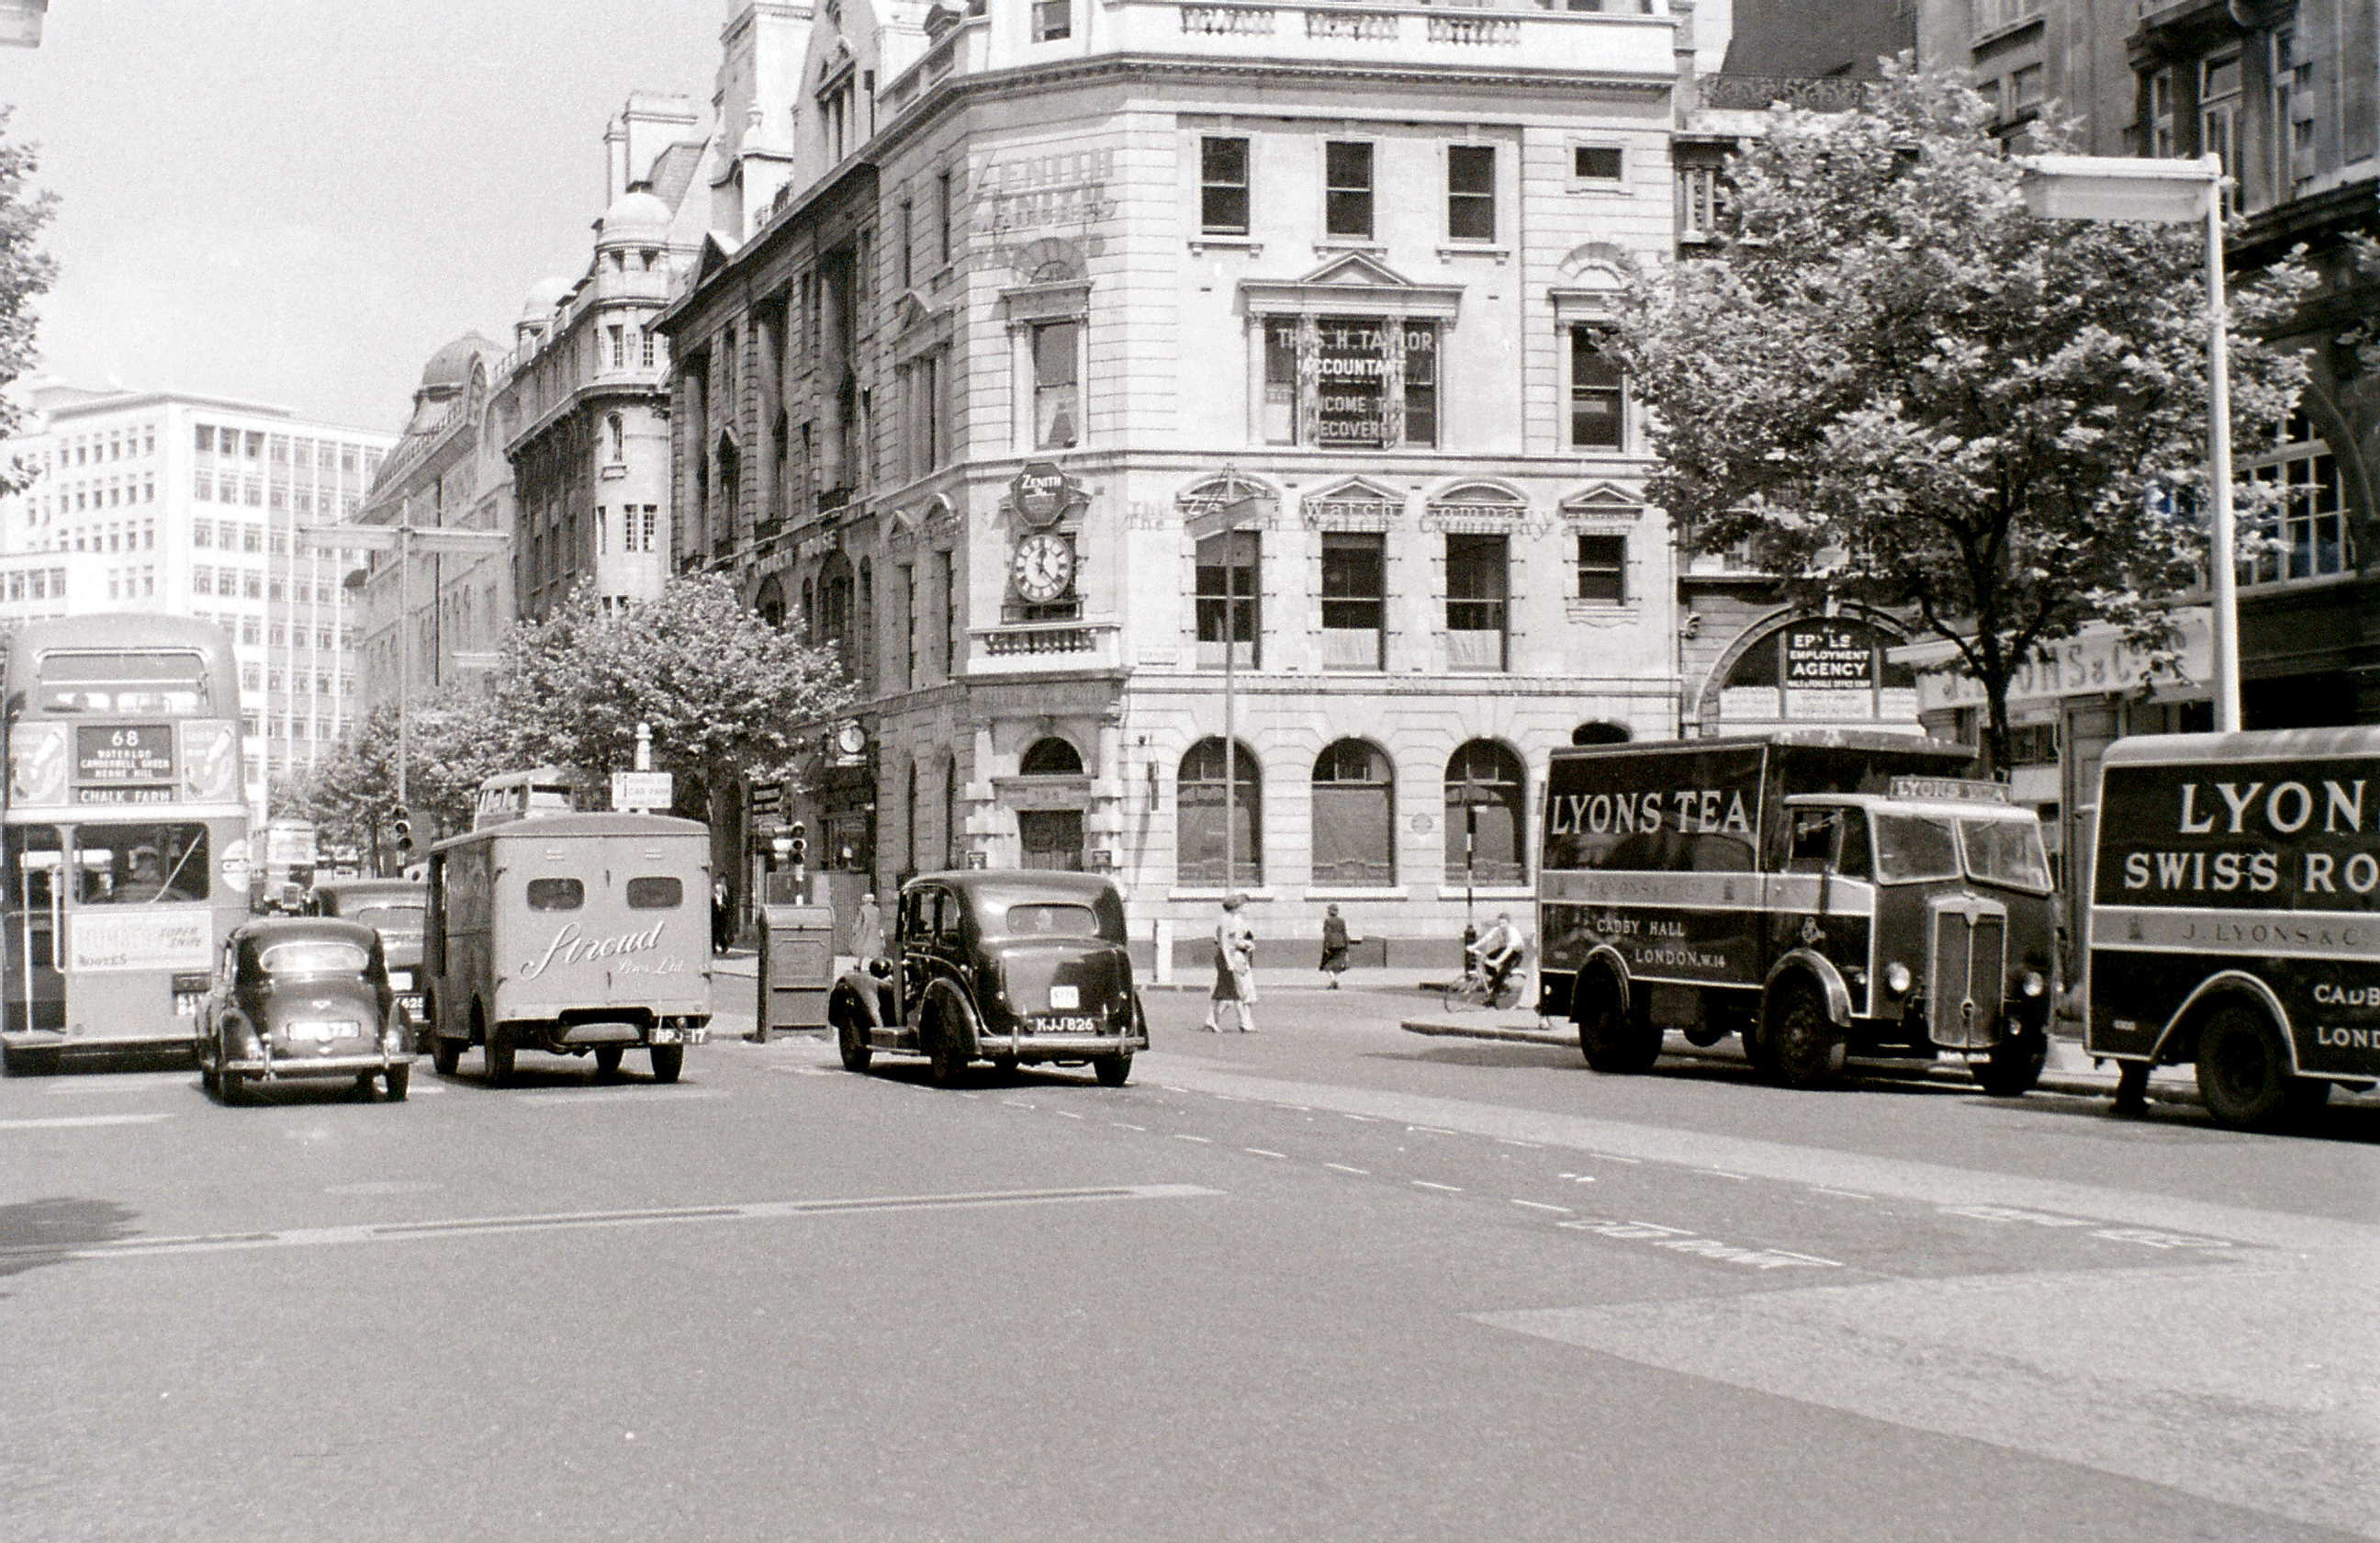 Kingsway cnr. High Holborn, London, 1 August 1955.